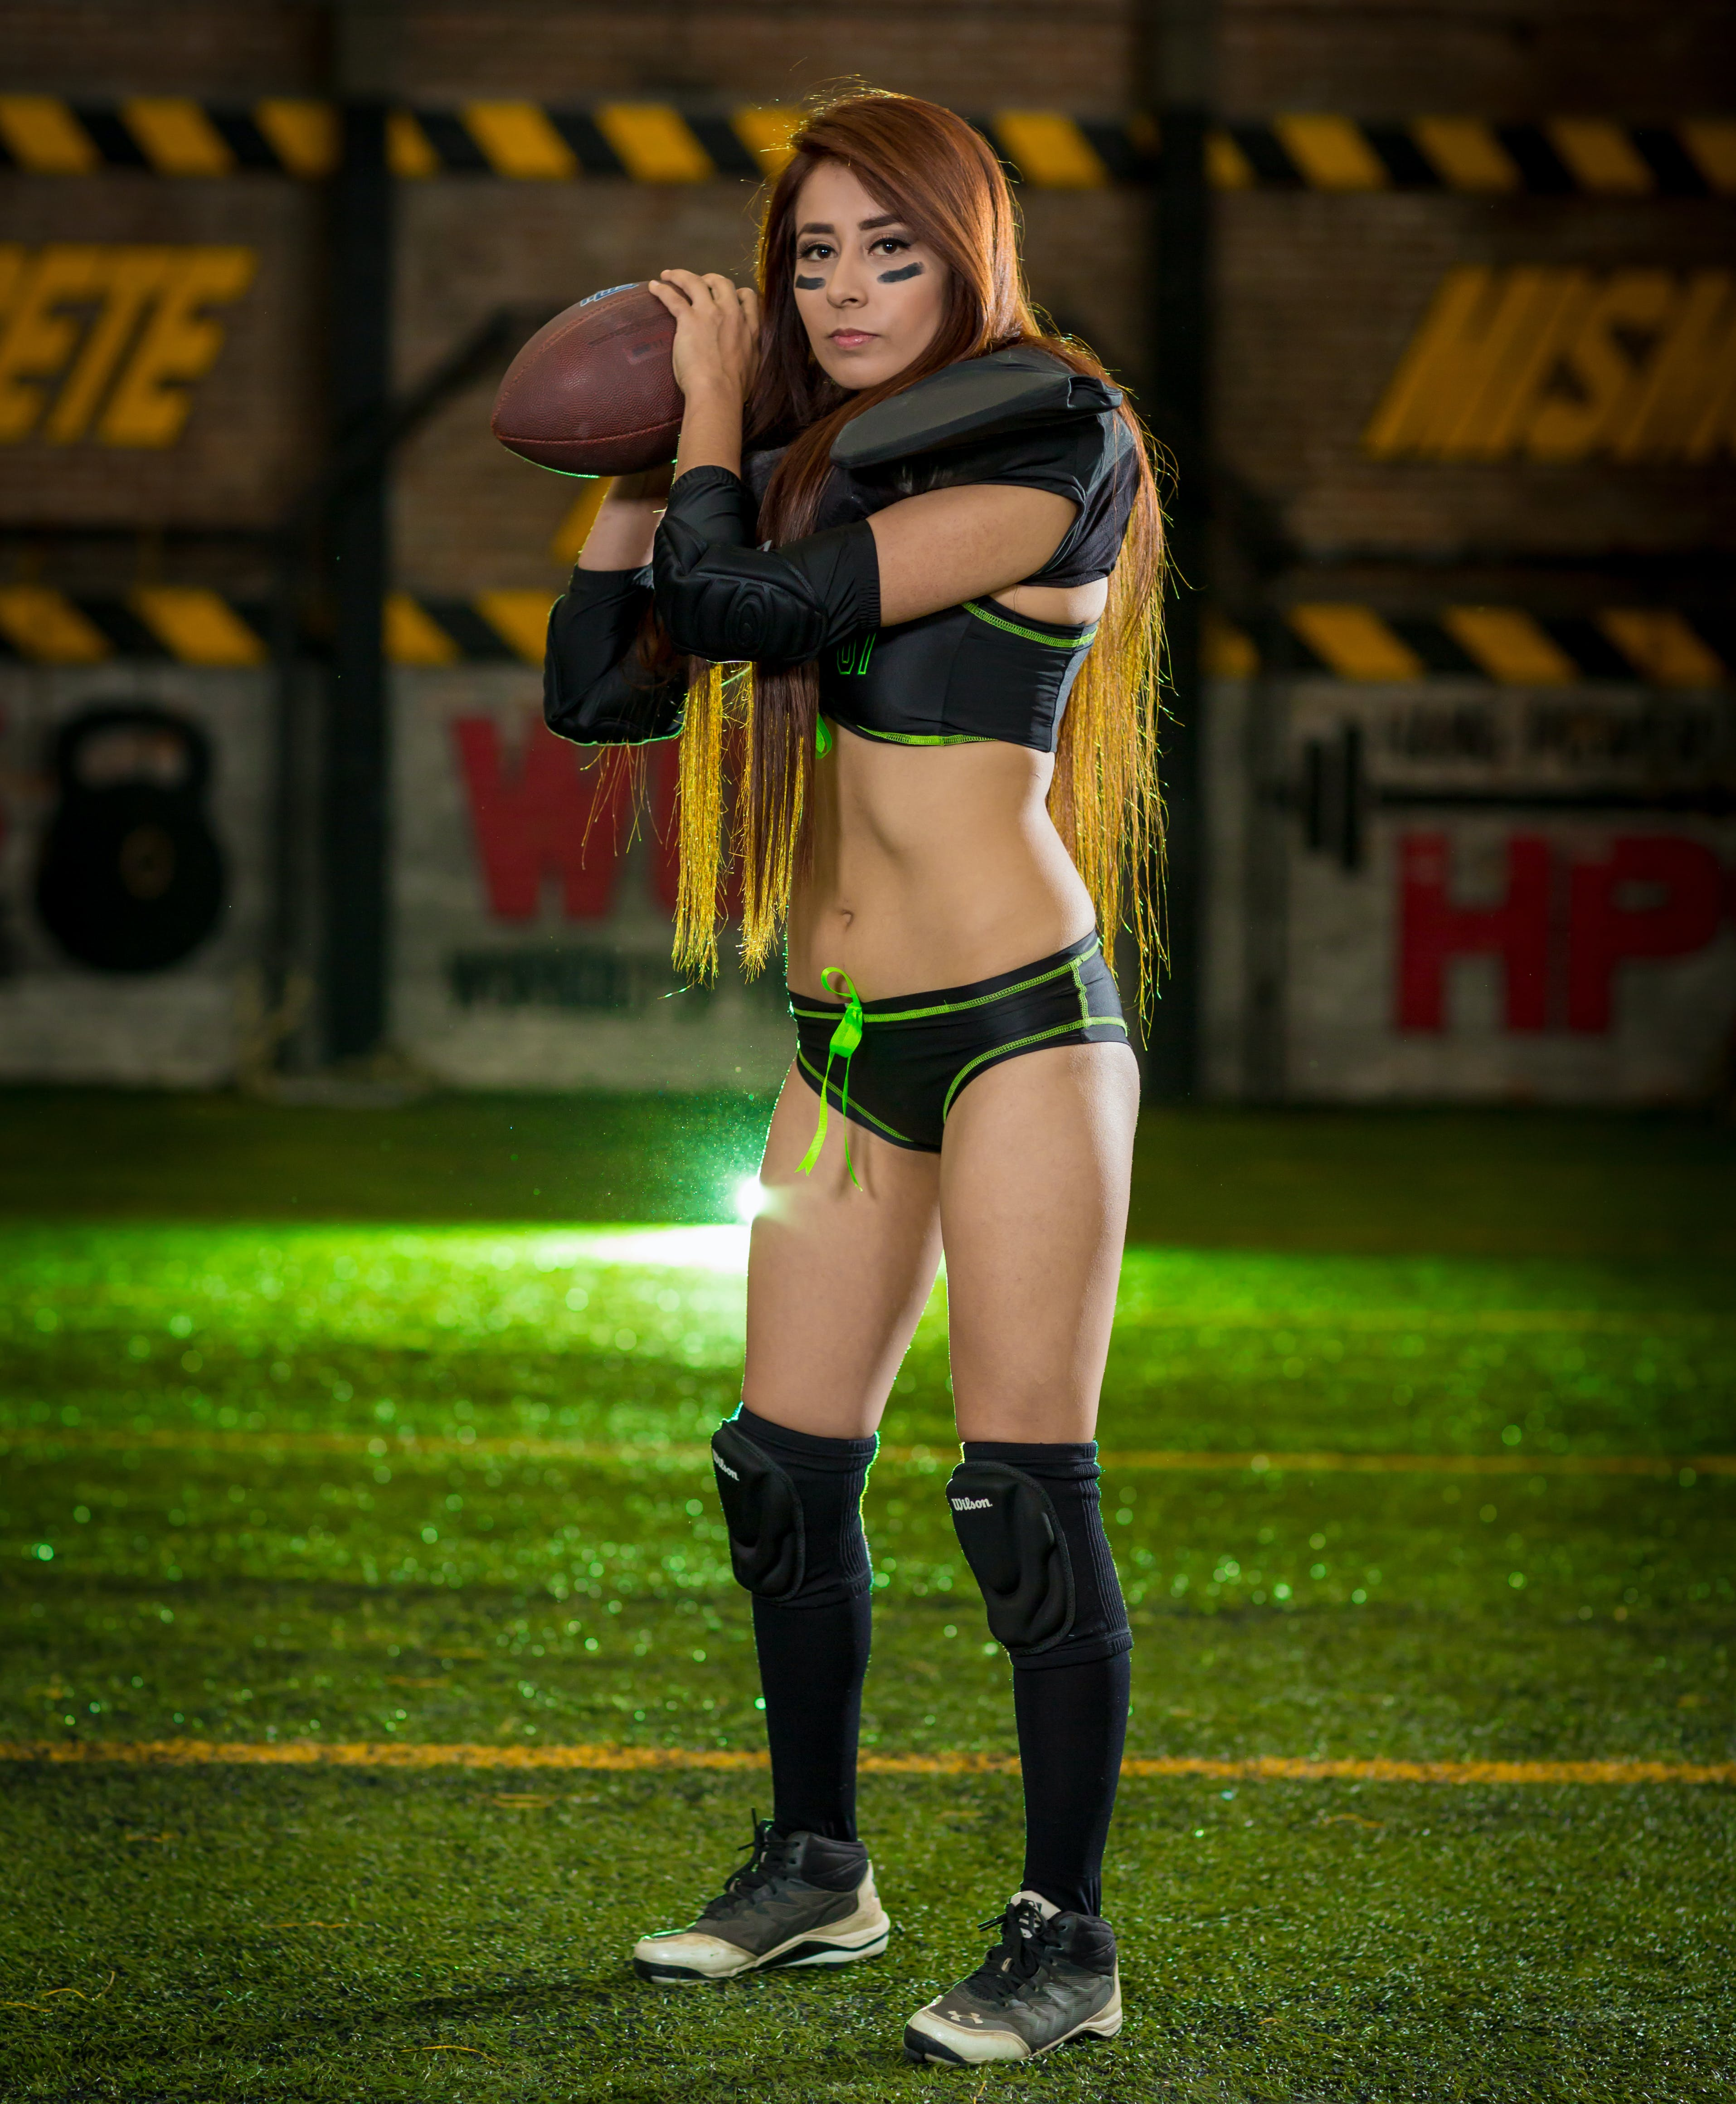 Woman Wearing Black-and-green Sports Bra and Pantie Holding Rugby Ball